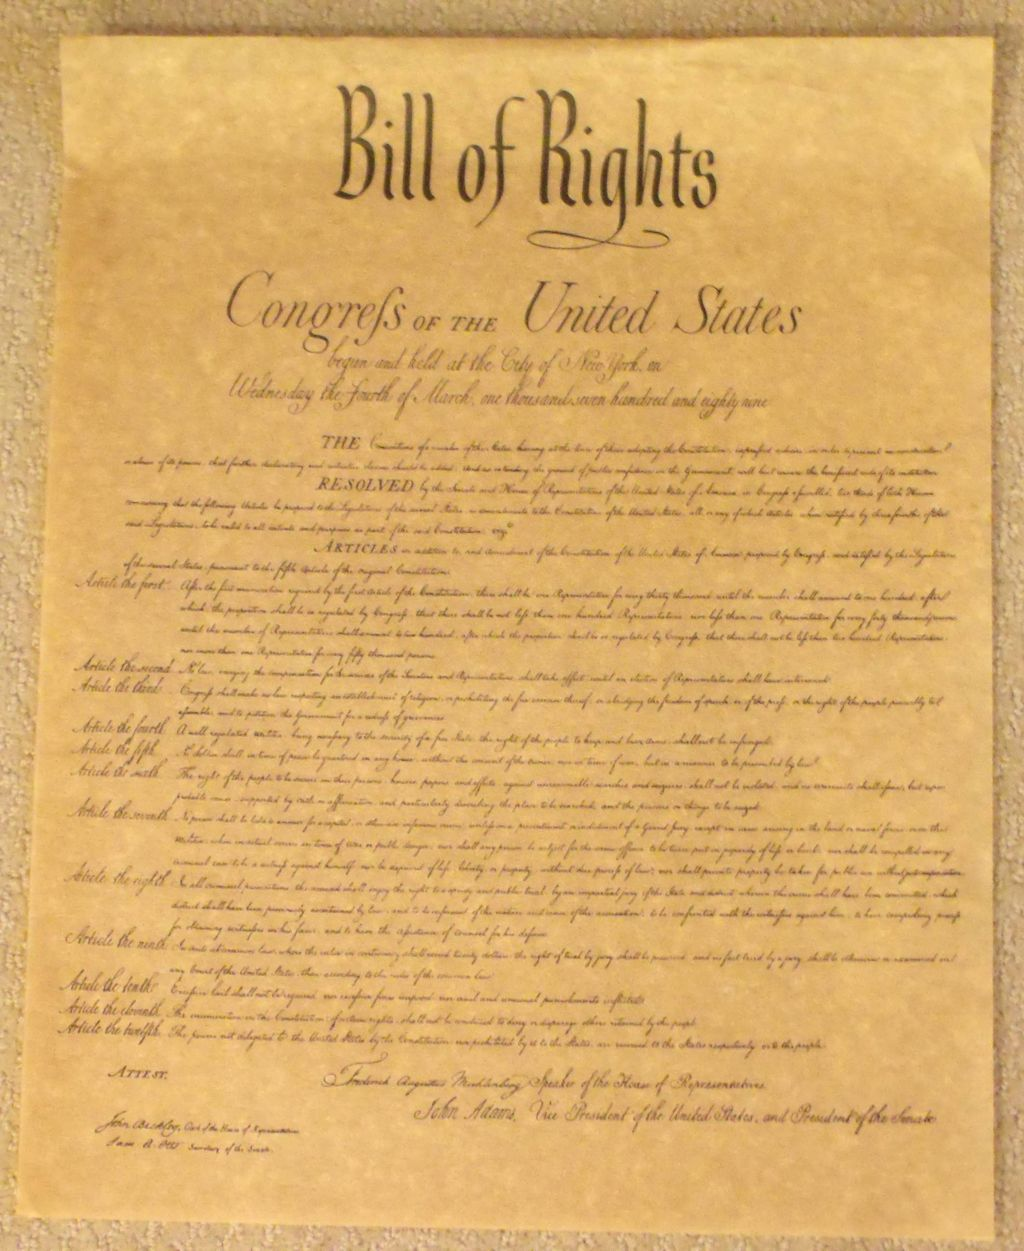 Bill of Rights-Congress-Parchment Art-History Document ...